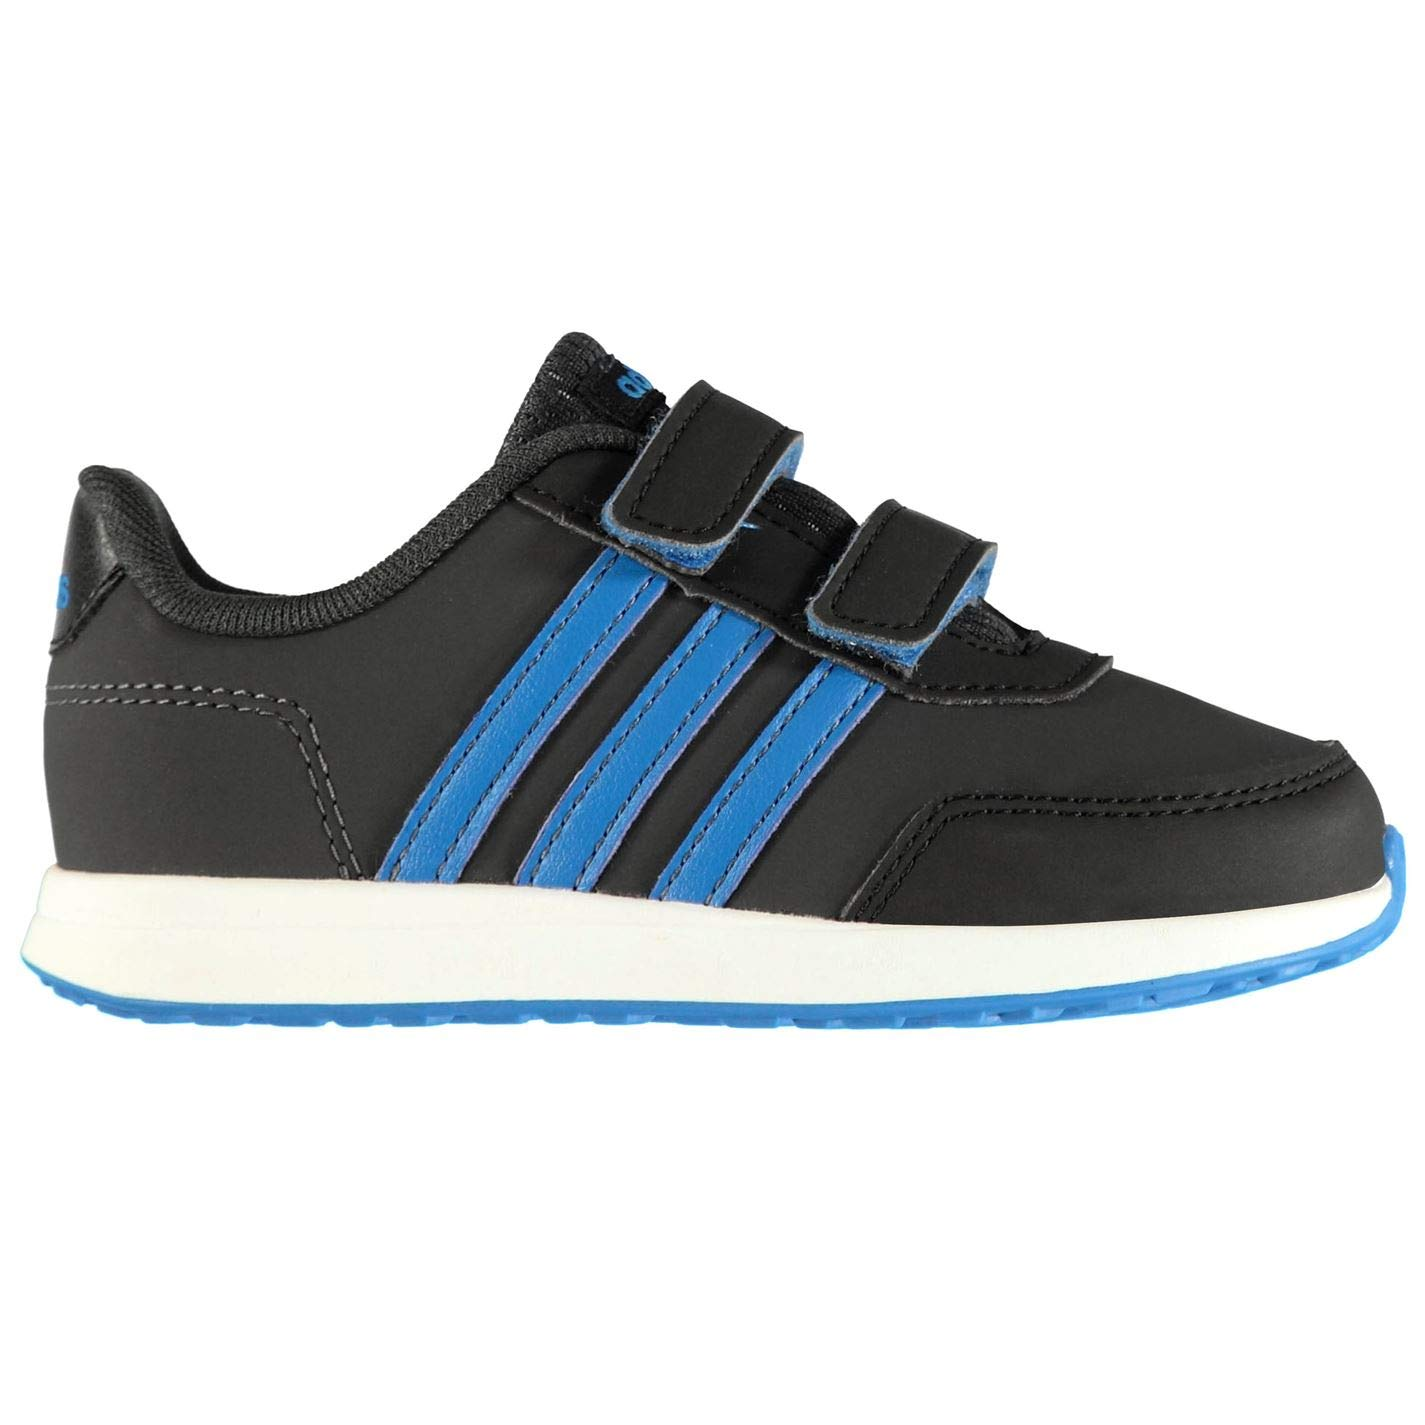 f35e8a48 adidas Unisex Kids' Vs Switch 2 CMF Inf Fitness Shoes